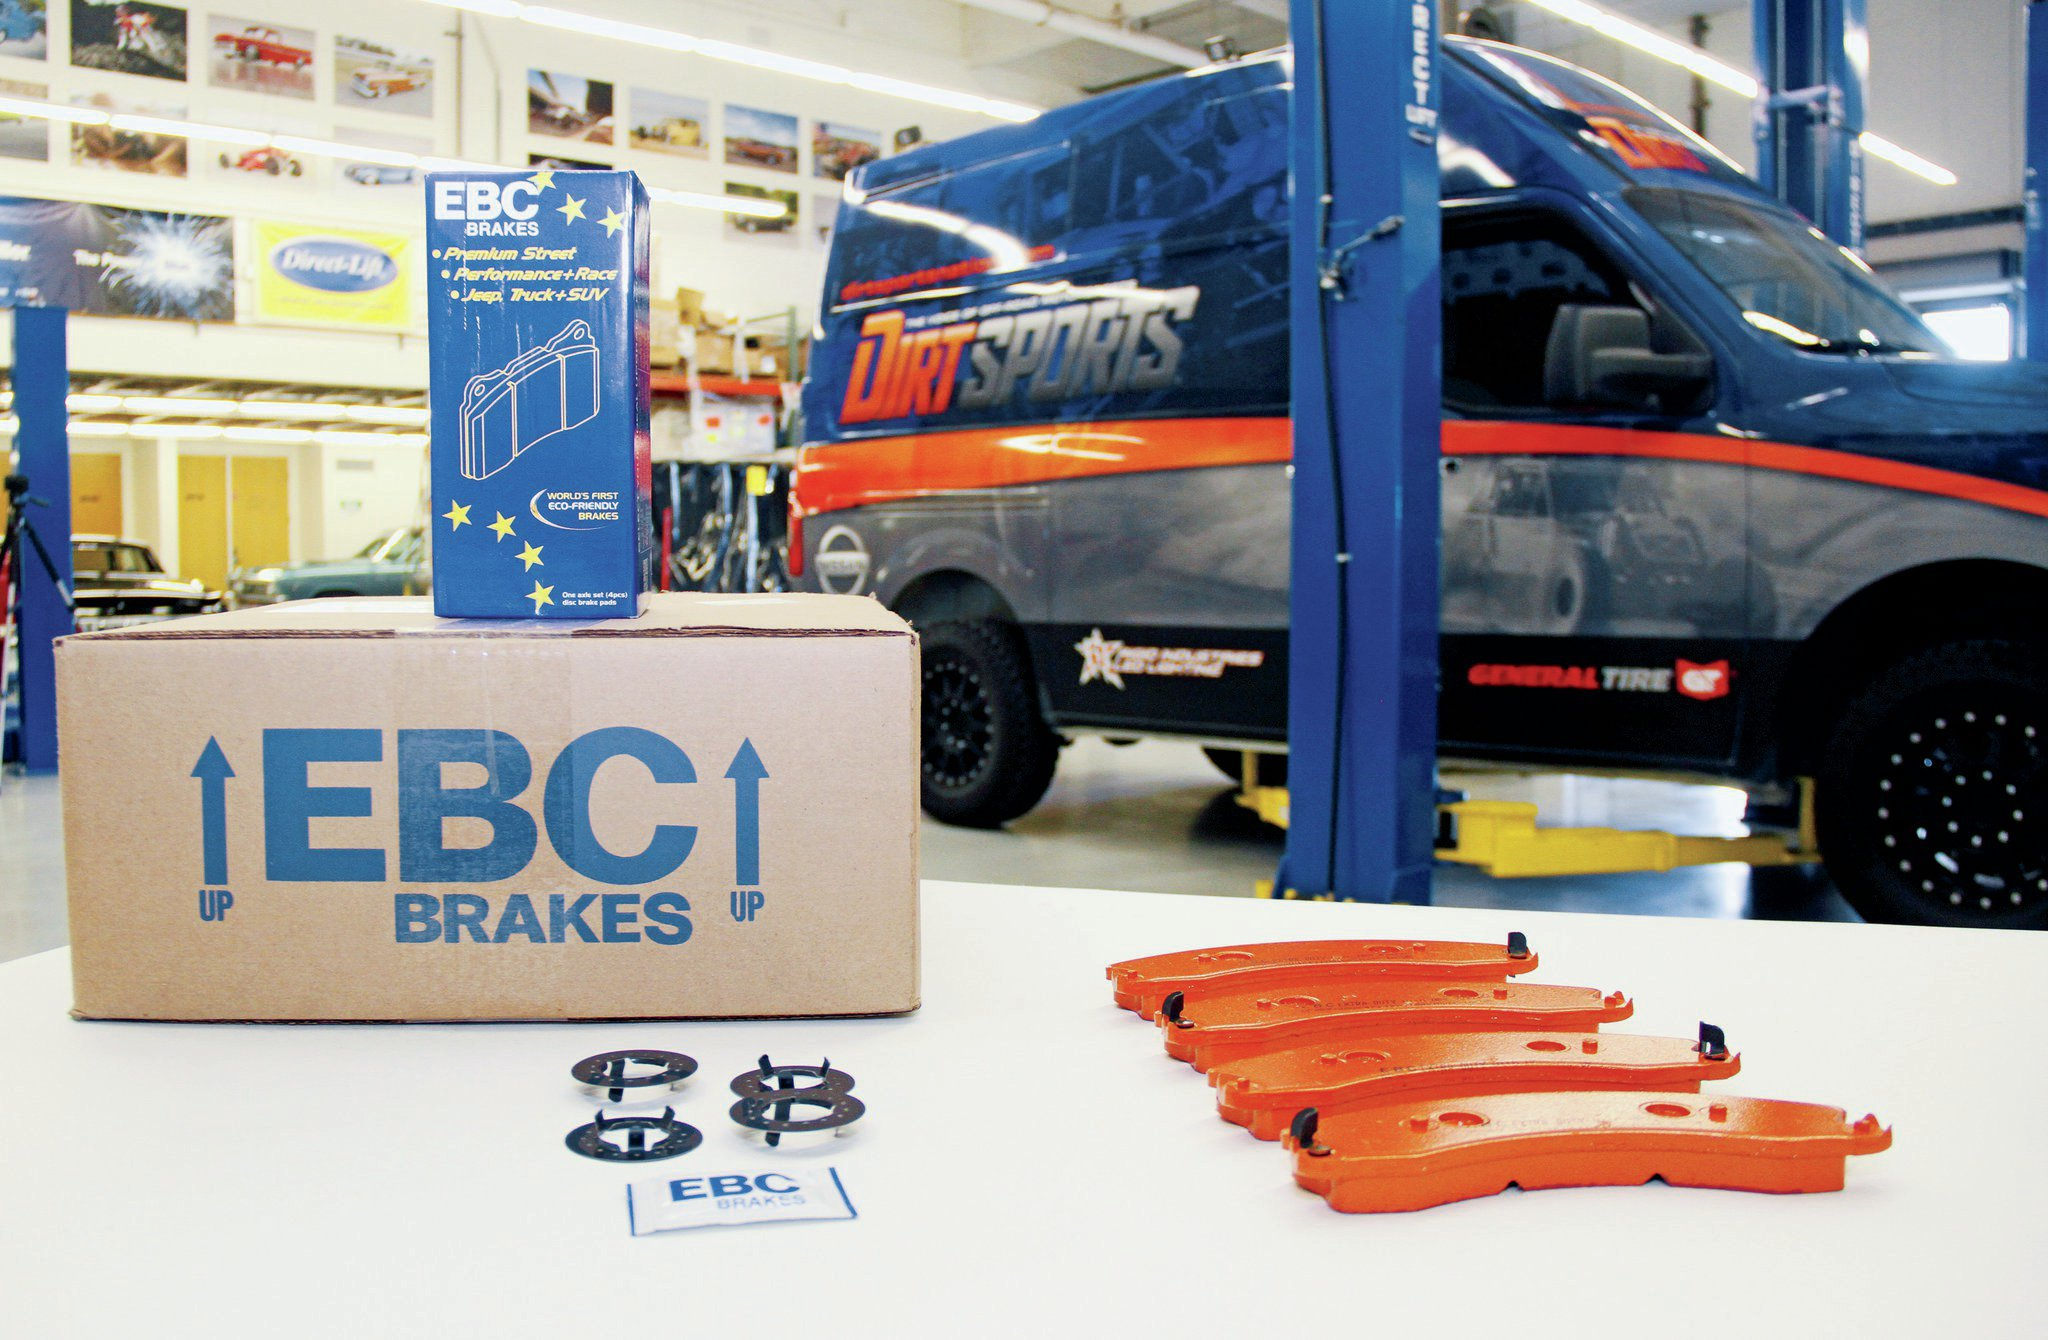 EBC supplied us with their performance brakes.